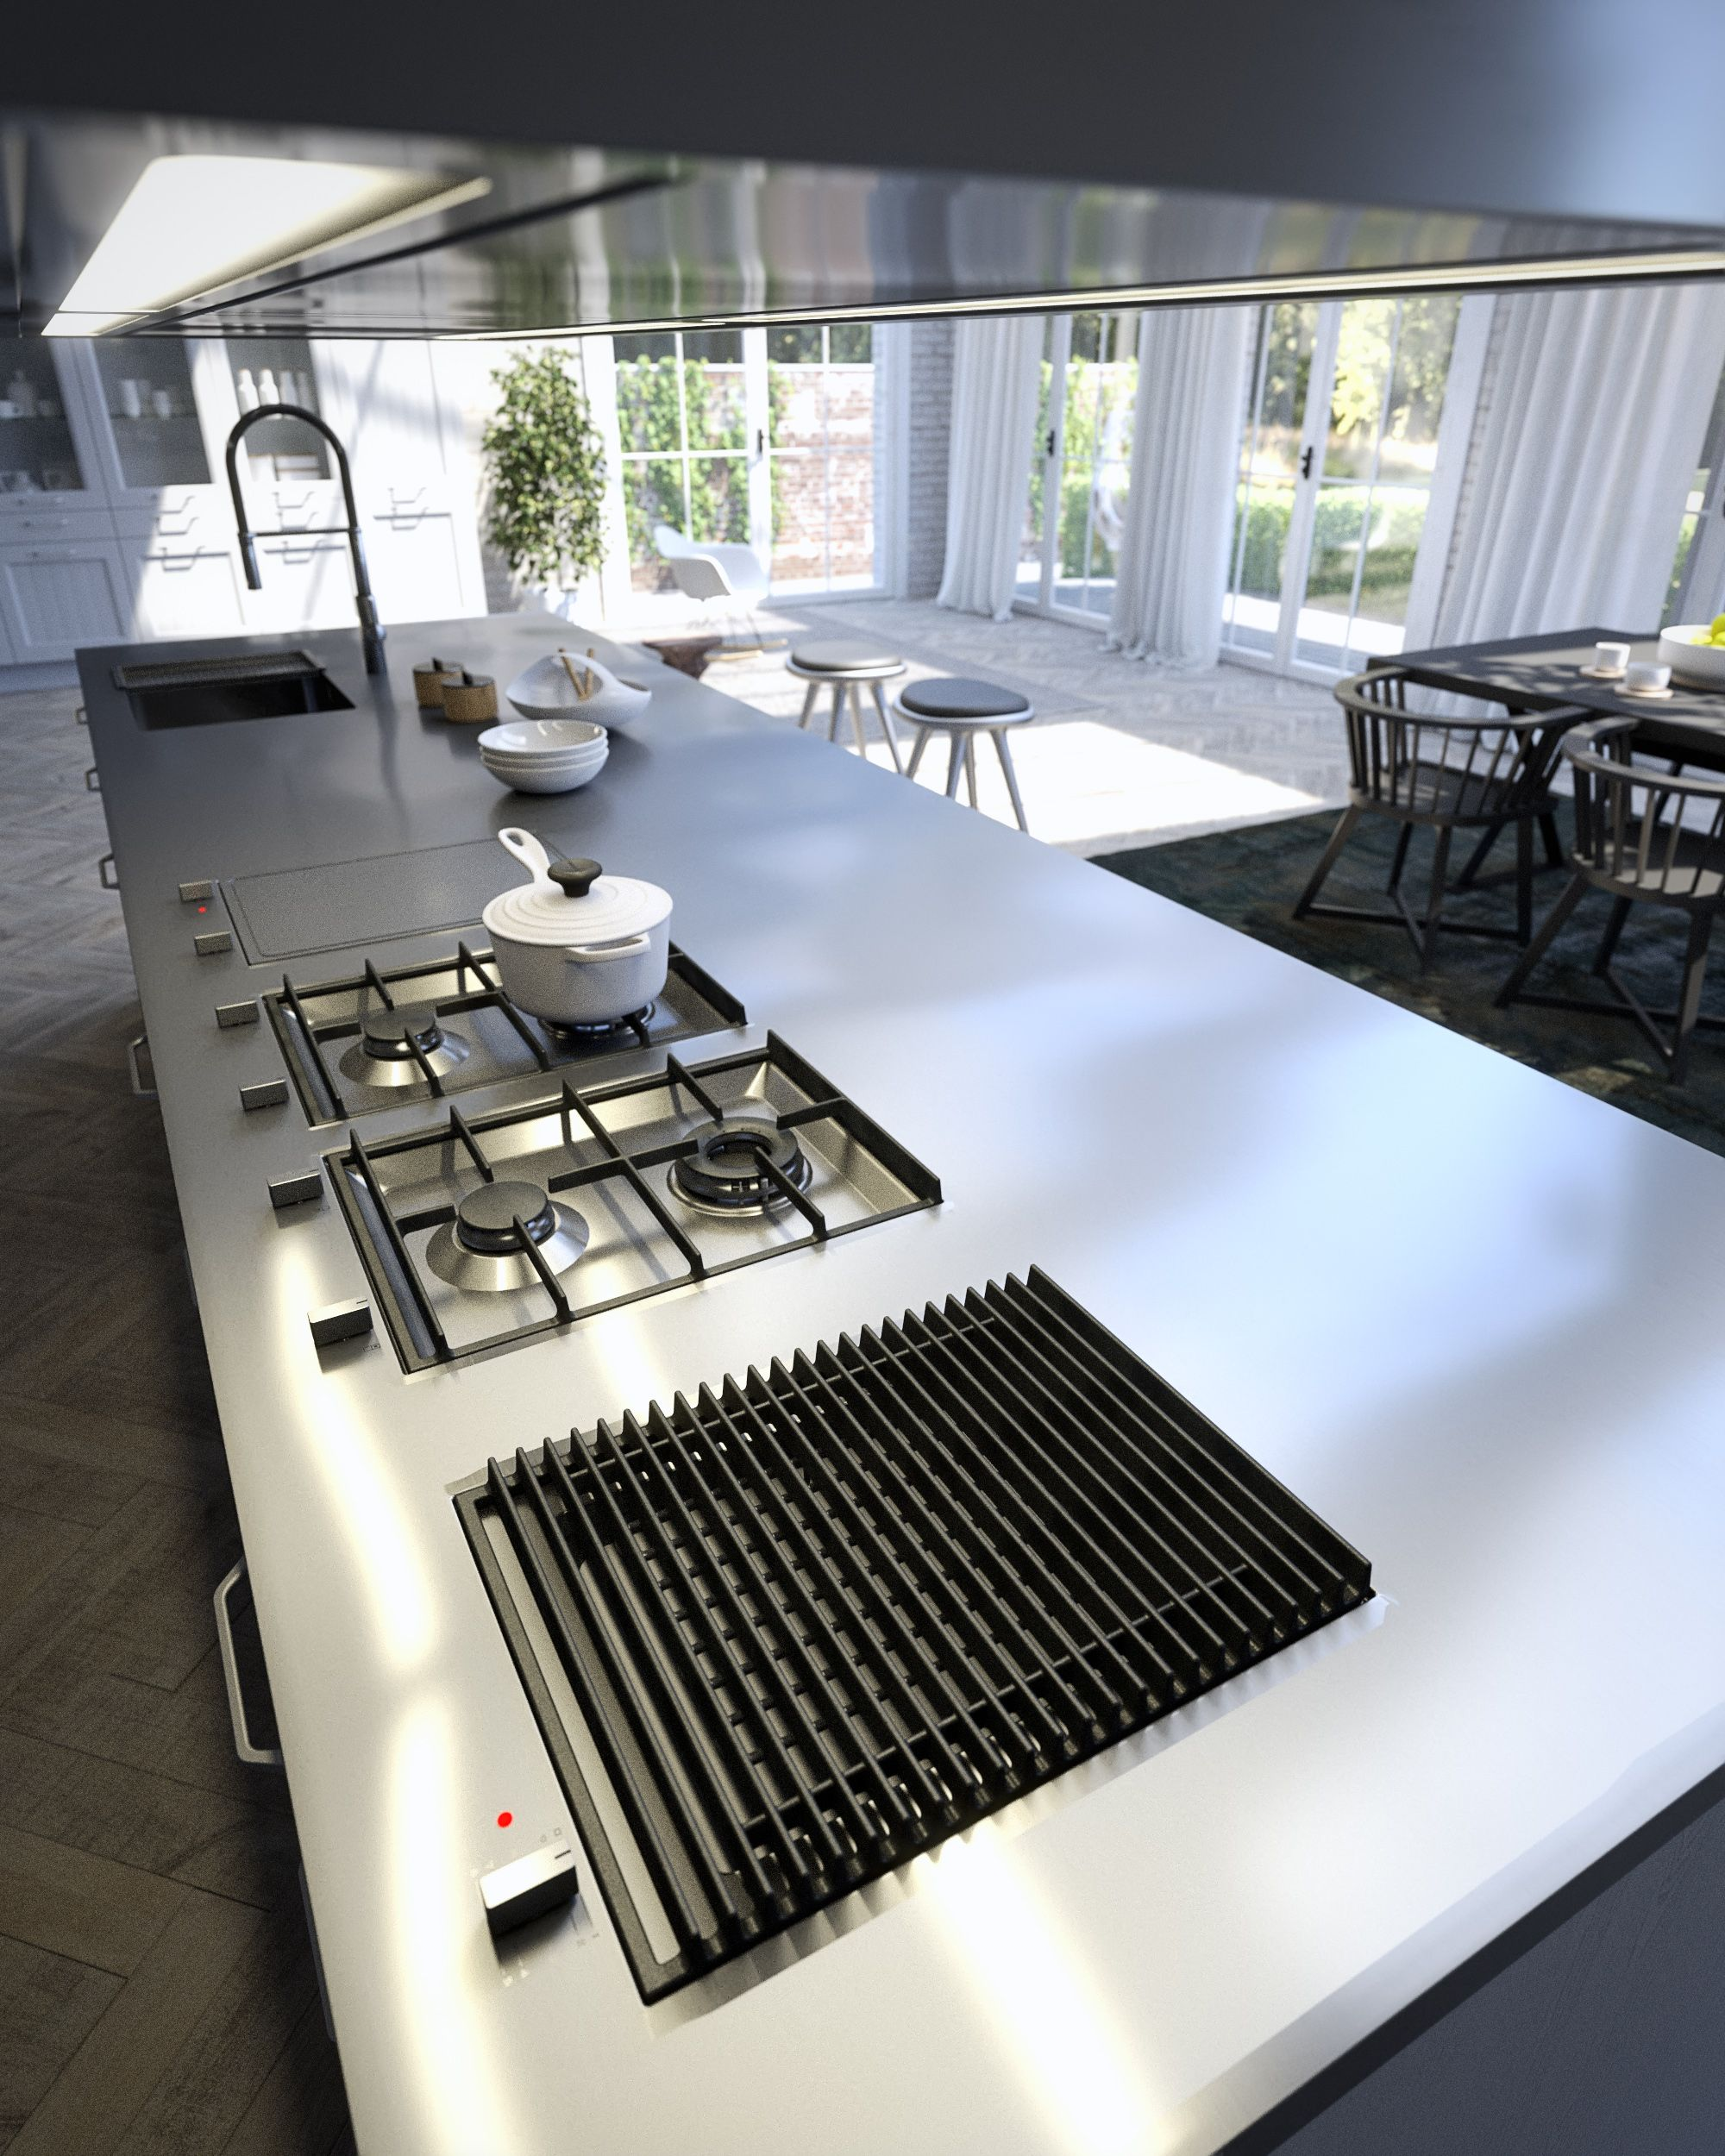 Cucina Kitchen Appliances Tutto Il Piacere Del Barbecue In Cucina Kitchen Kitchen